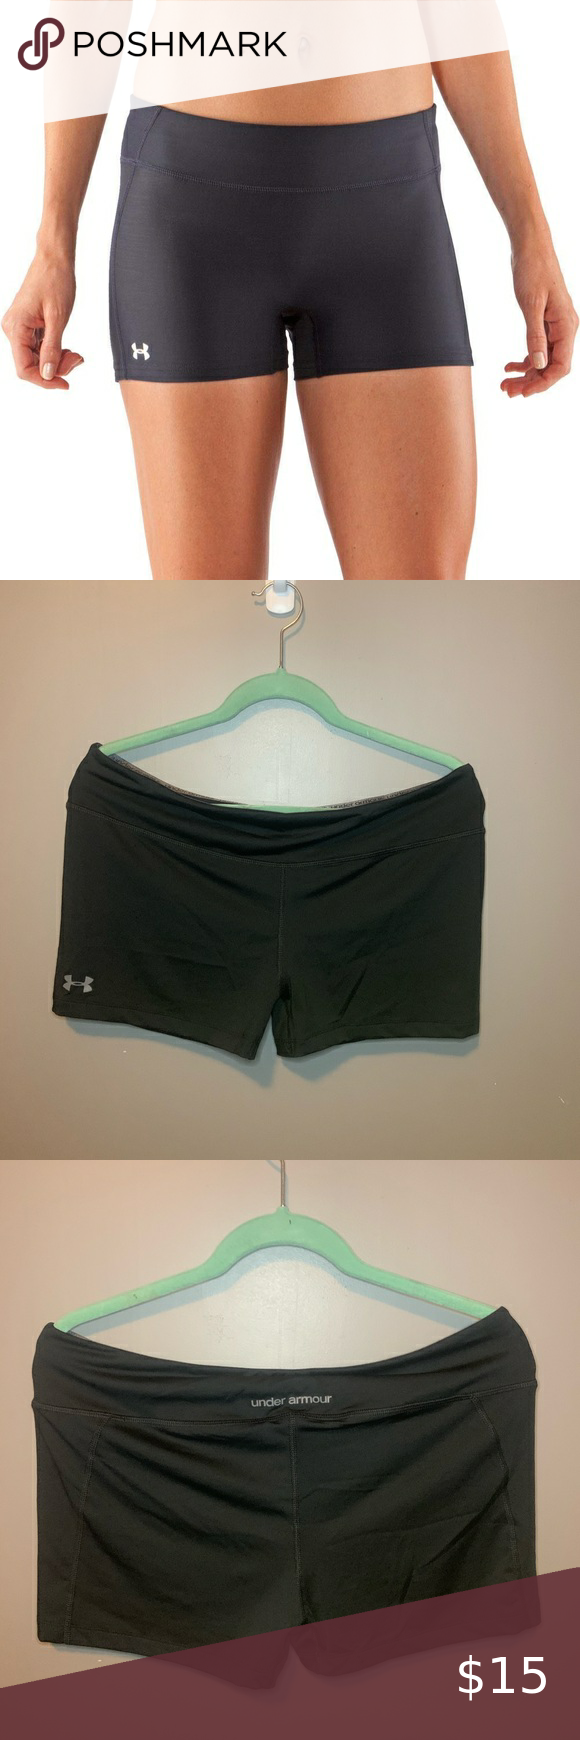 Under Armour Spandex Volleyball Shorts In 2020 Volleyball Shorts Gym Shorts Womens Fashion